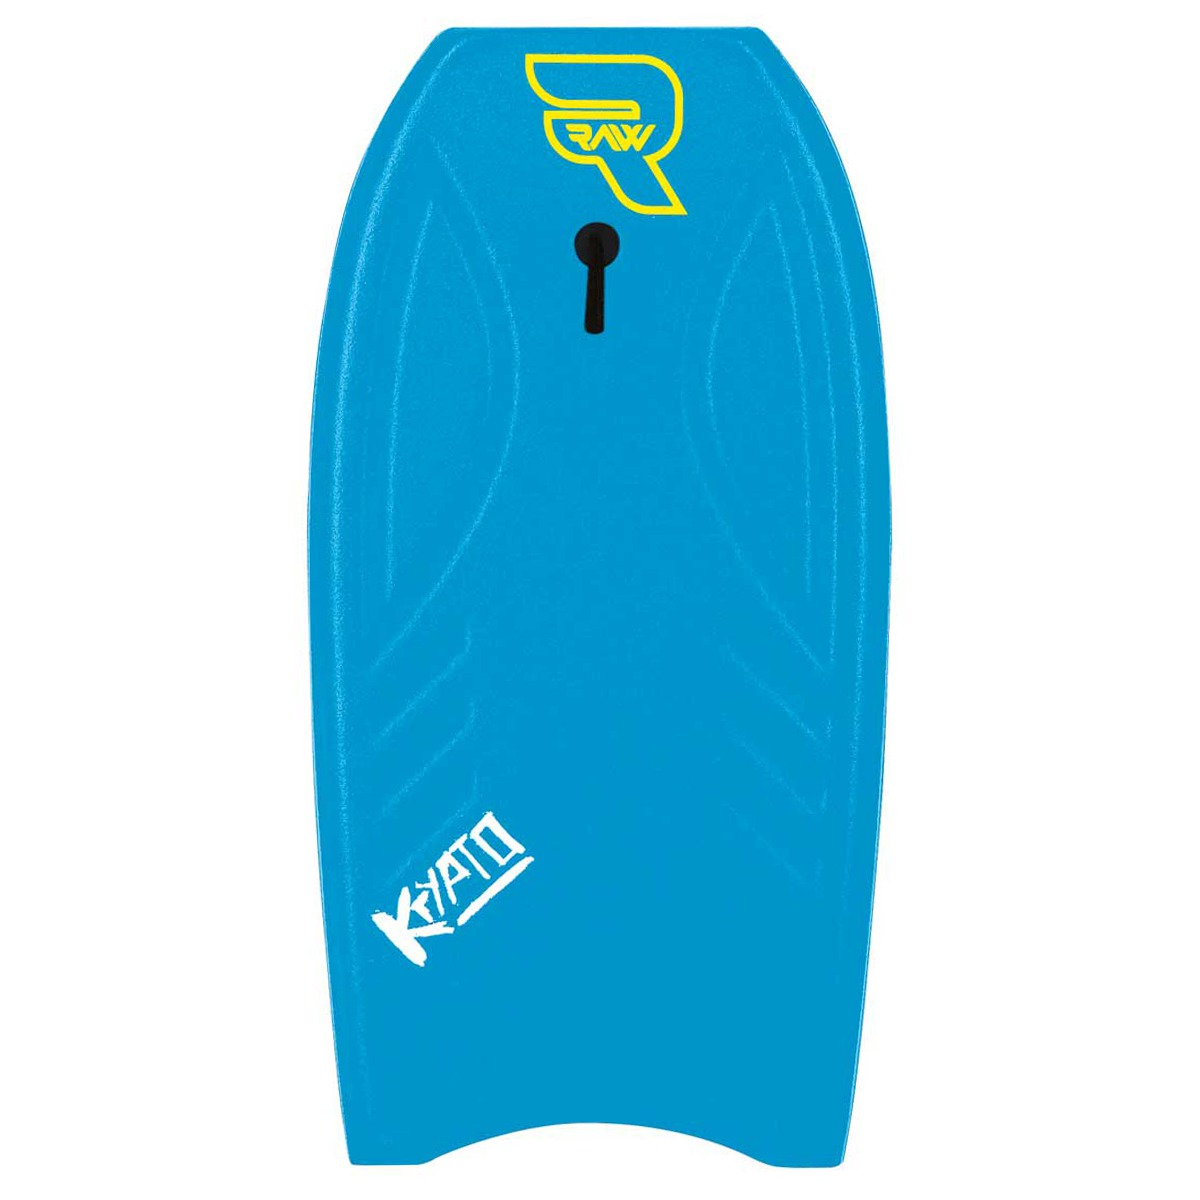 Kids Boogie Board All Baby Hire Gold Coast North